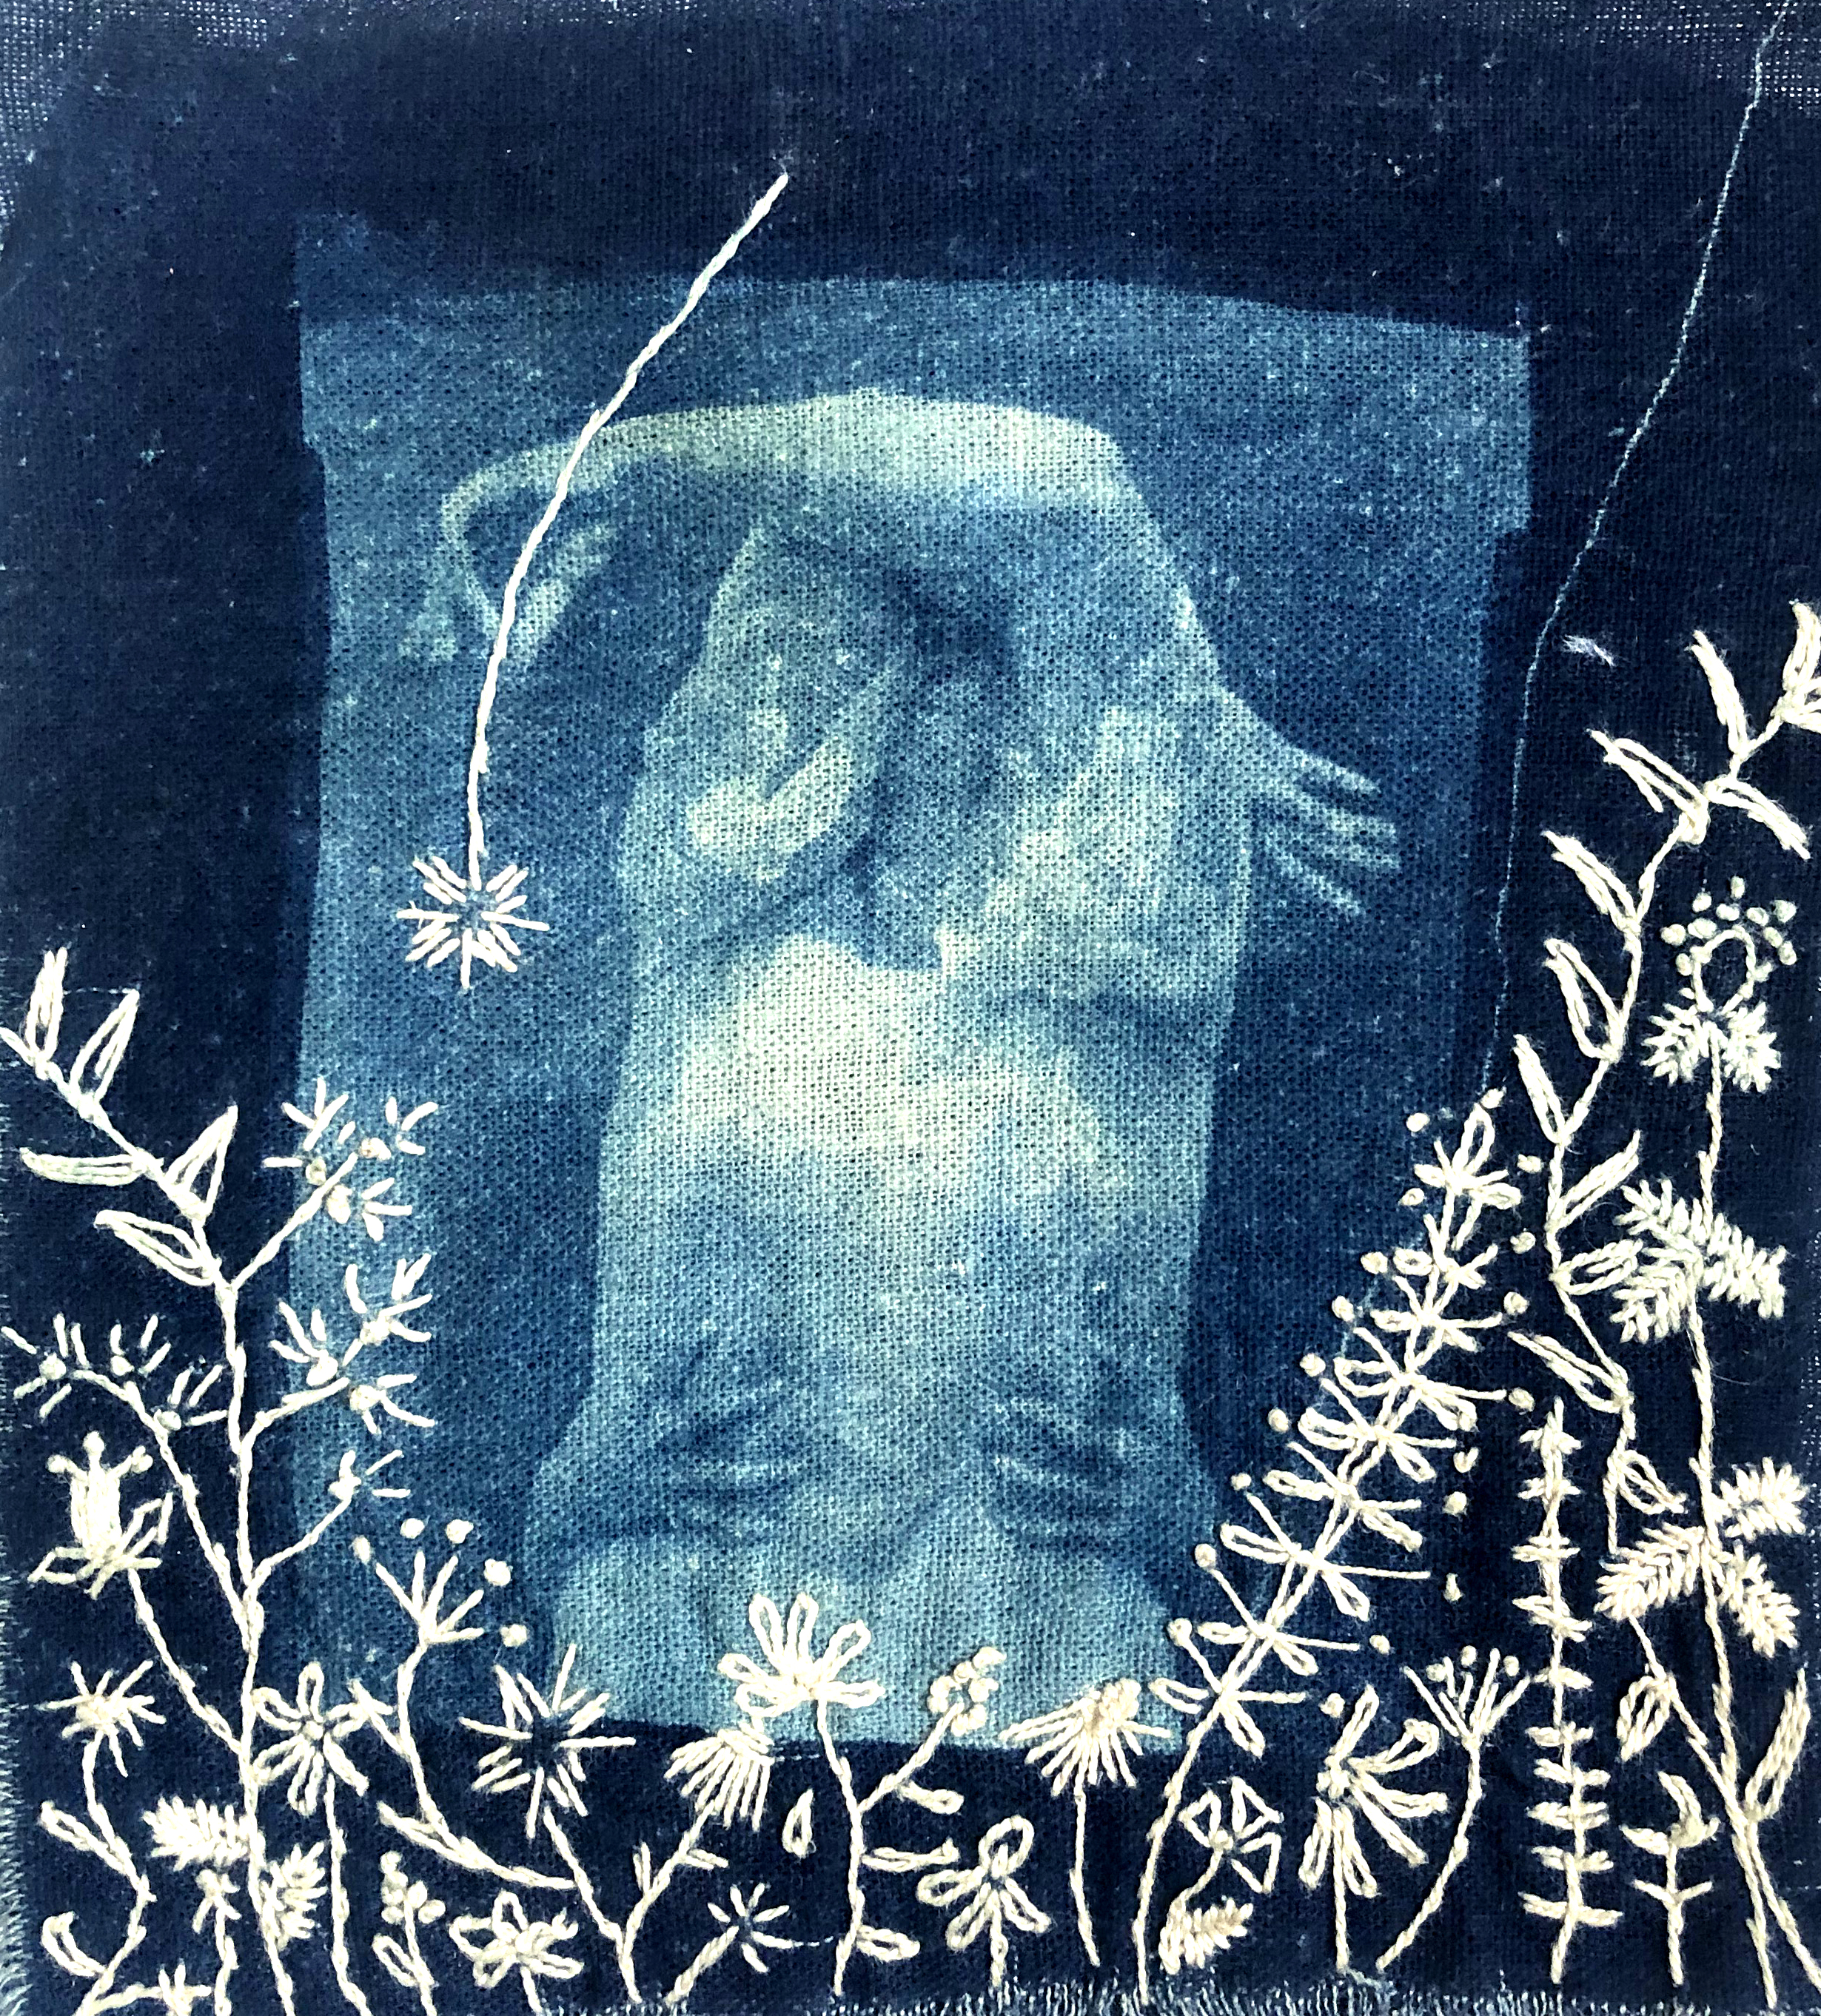 Cyanotypes on linen contact printed from 4x5 negatives  embellished with cotton thread embroidery